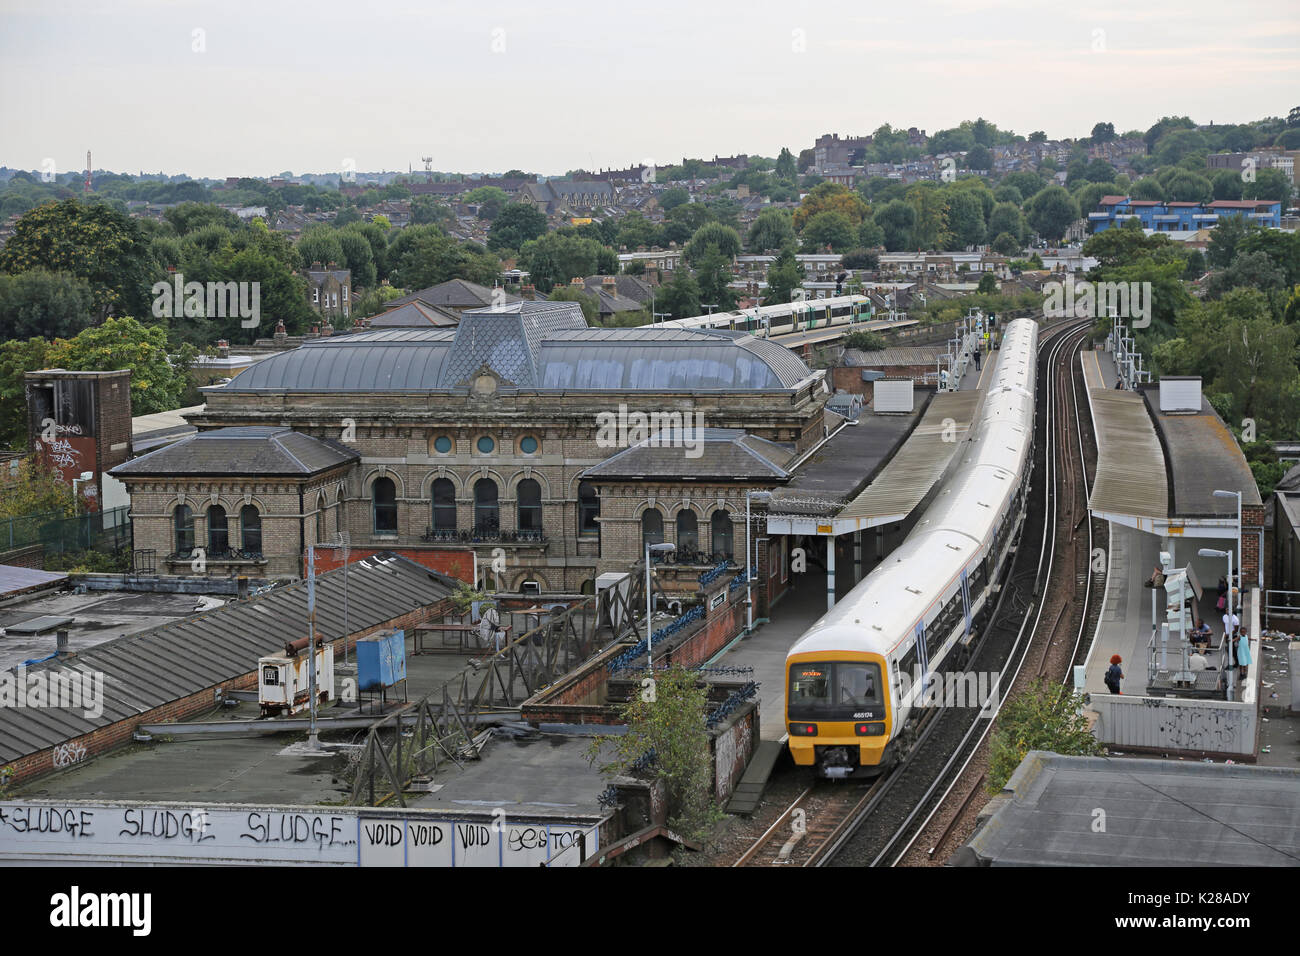 High level view of Peckham Rye Station in Southeast London, UK. Shows Southeastern network train at Platform 3 and the Victorian station building. - Stock Image